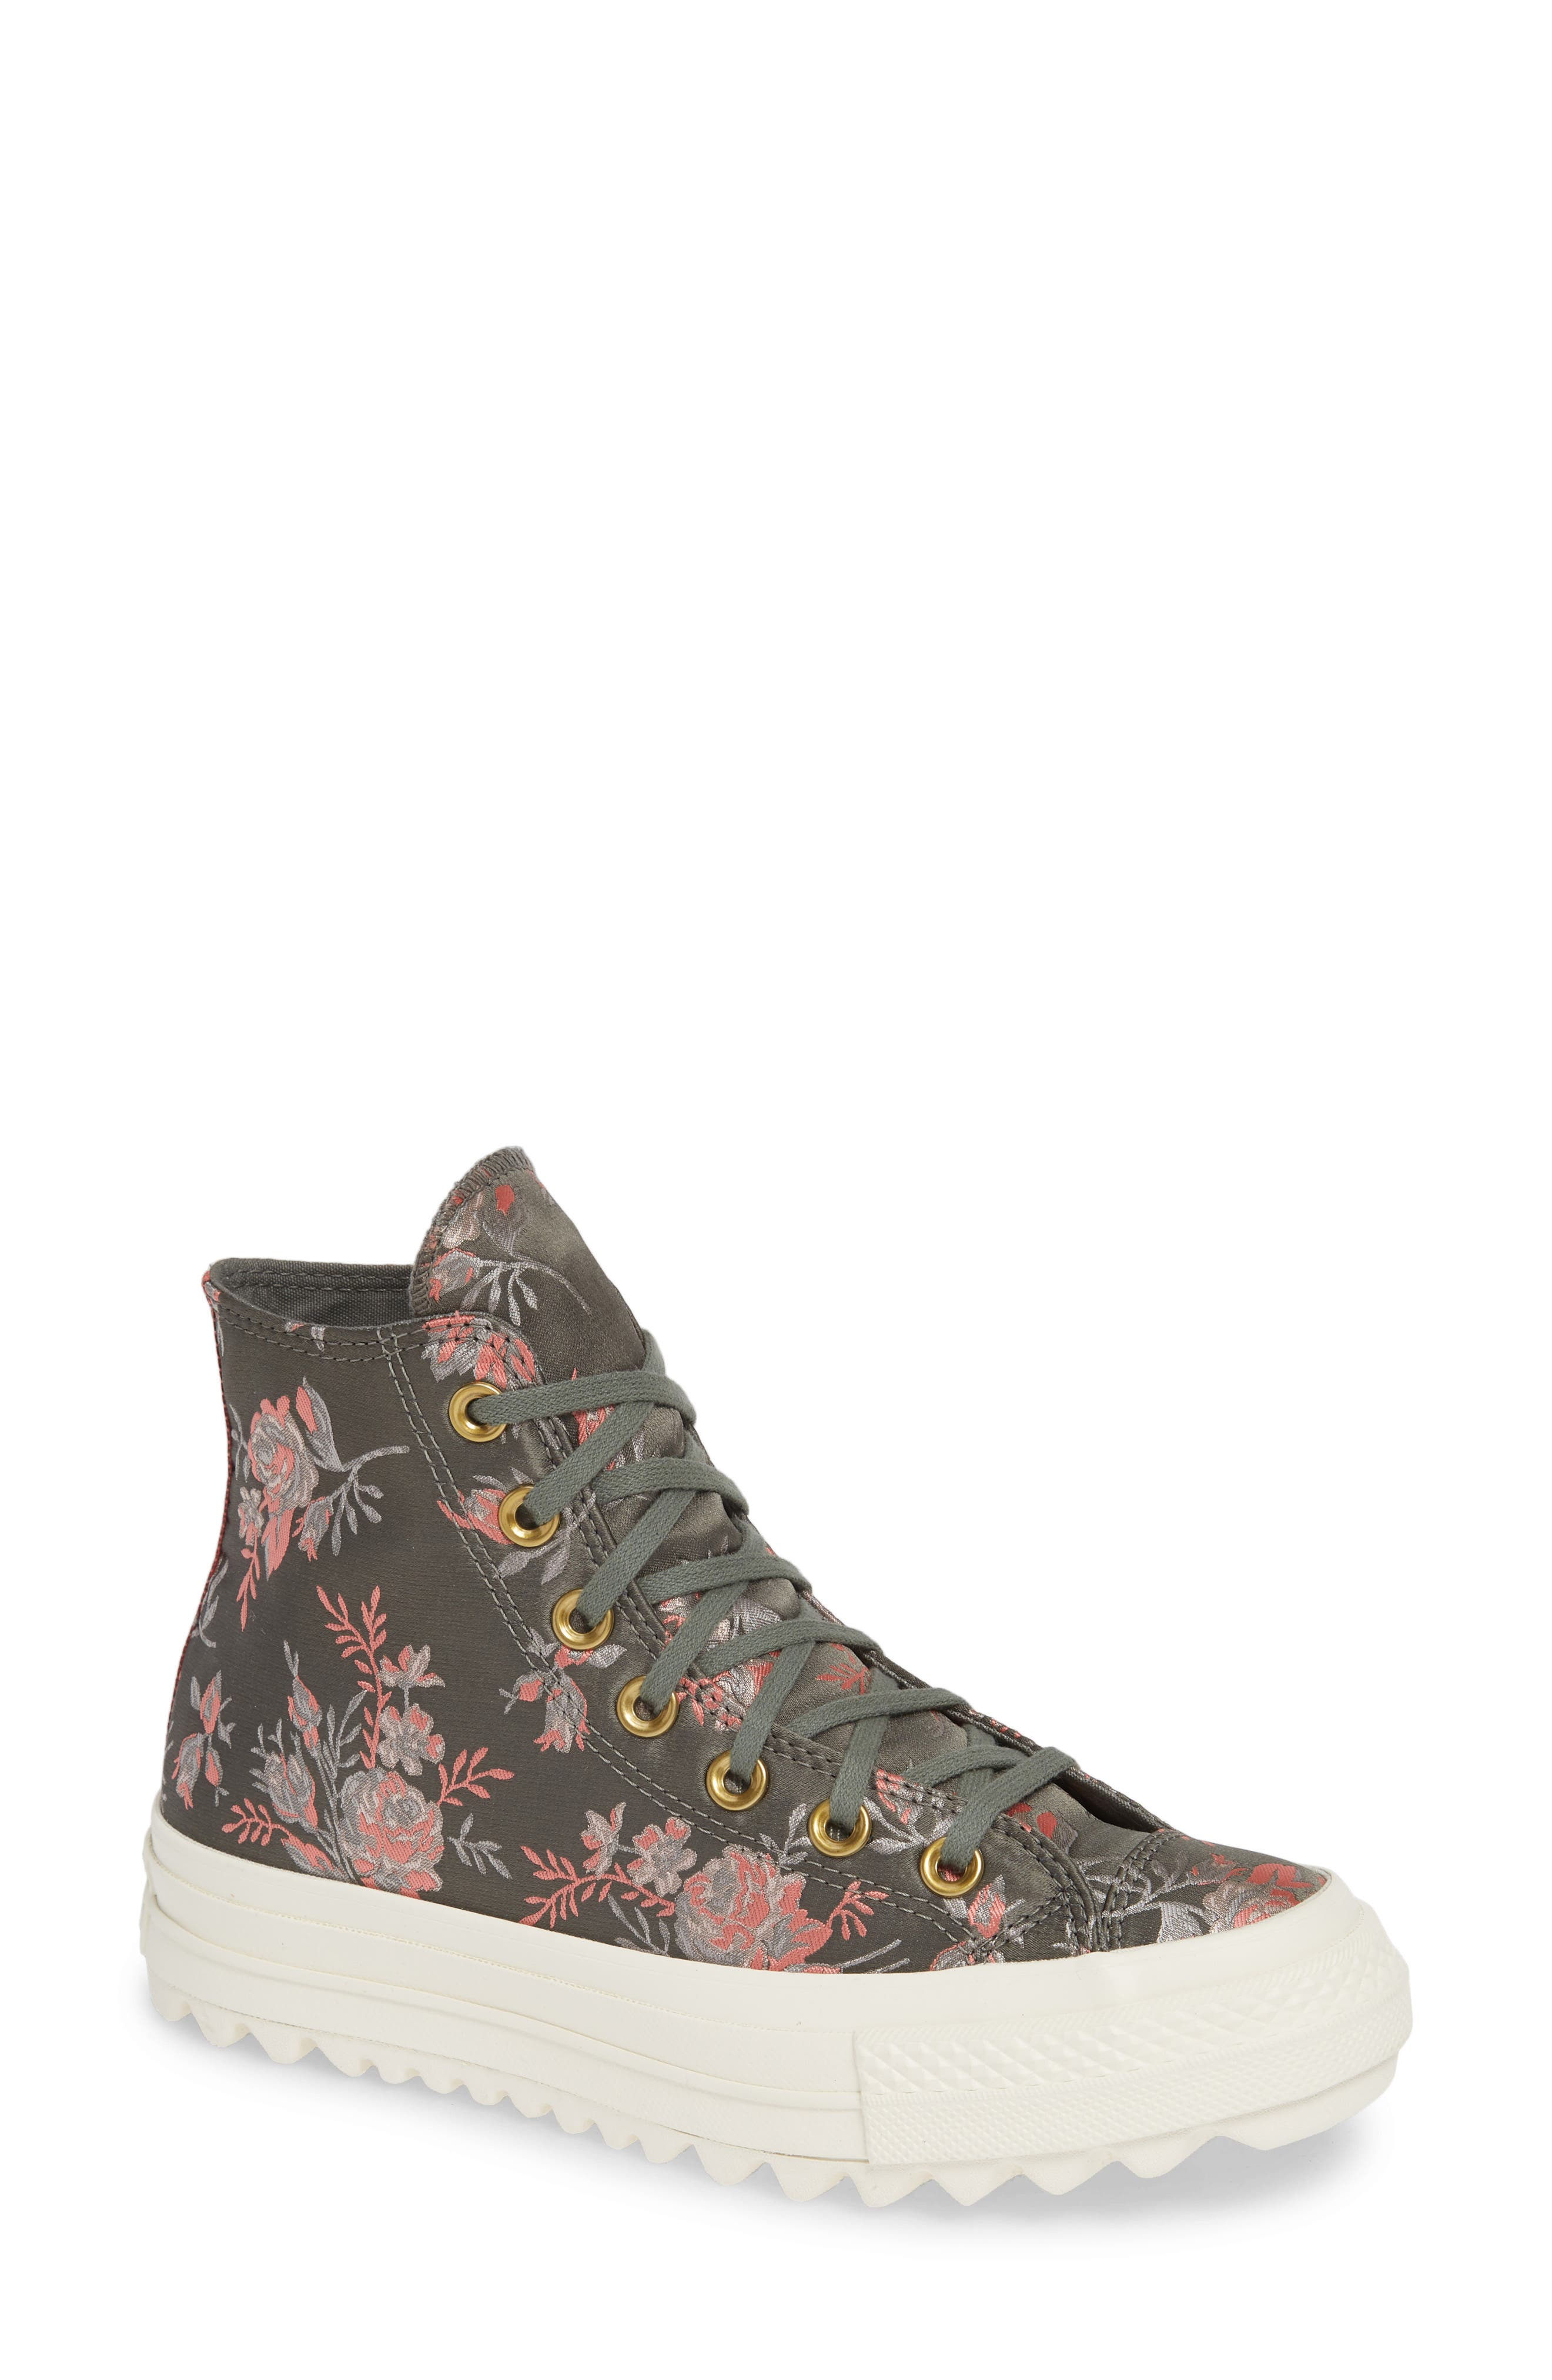 Chuck Taylor<sup>®</sup> All Star<sup>®</sup> Lift Ripple Parkway Floral High Top Sneaker,                         Main,                         color, 020